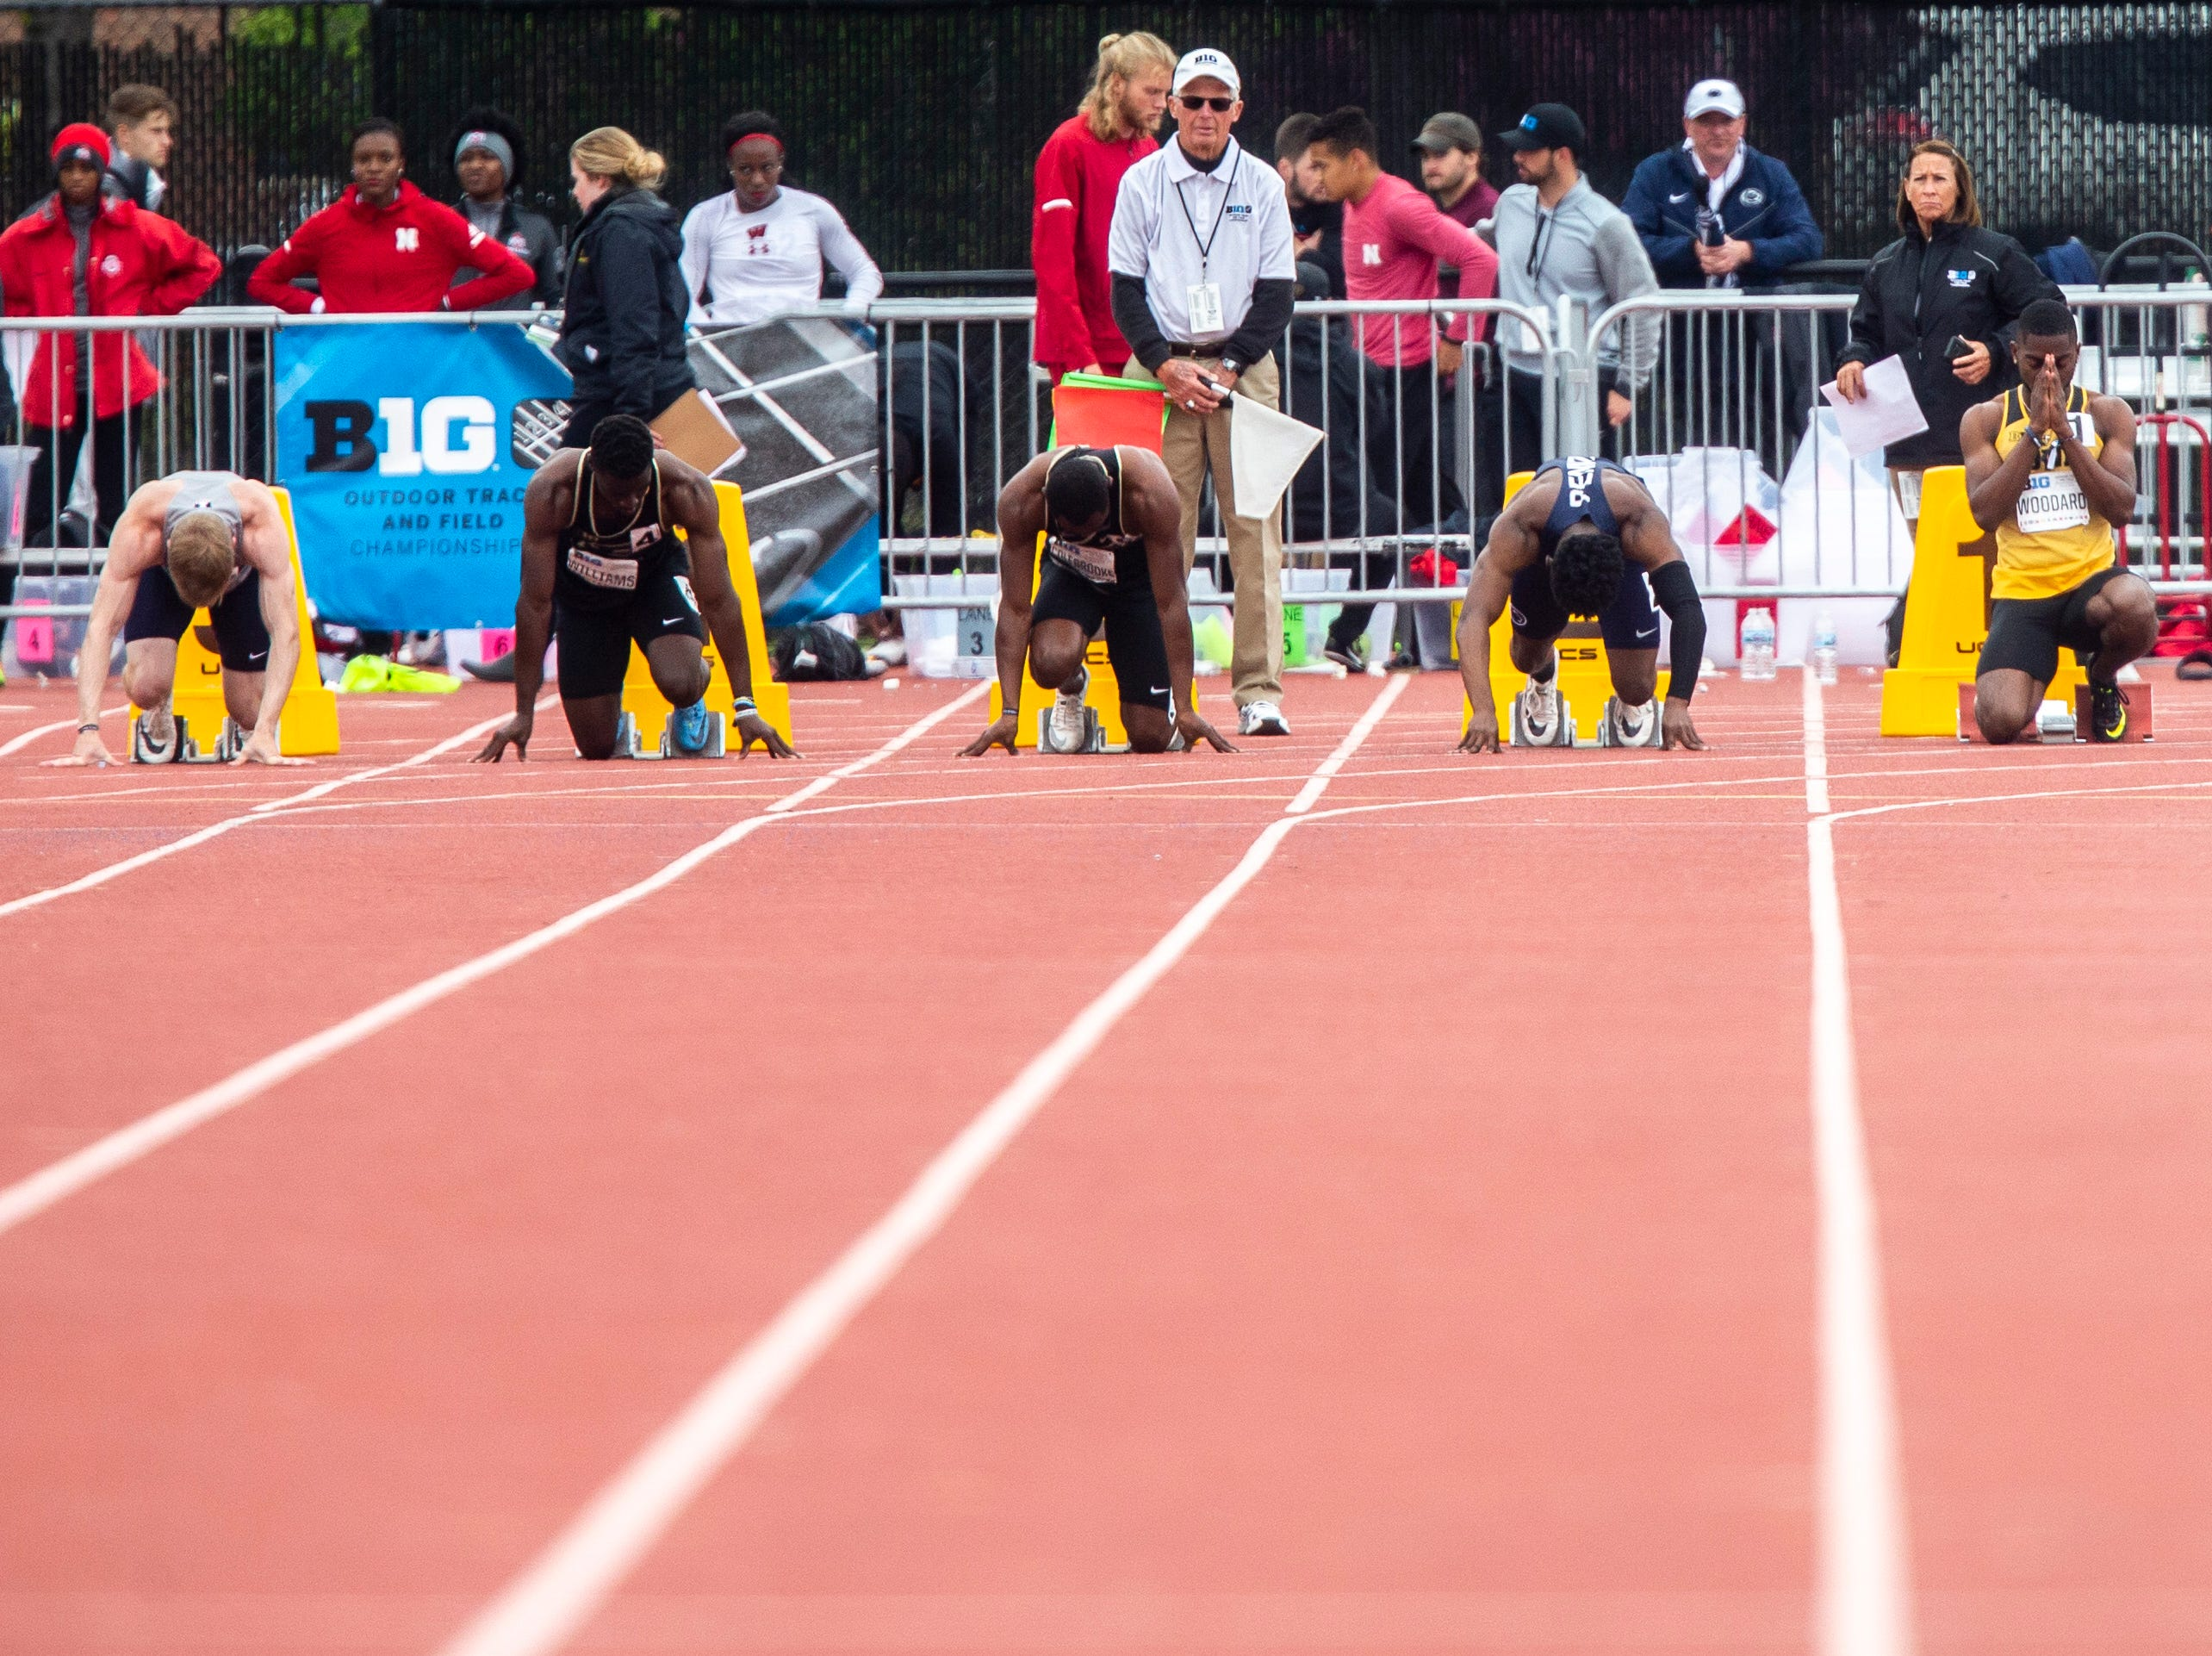 Iowa's Antonio Woodard, far right, prays before the 100 meter dash finals during the final day of Big Ten track and field outdoor championships, Sunday, May 12, 2019, at Francis X. Cretzmeyer Track on the University of Iowa campus in Iowa City, Iowa. Woodard finished seventh, with a time of 10.40.